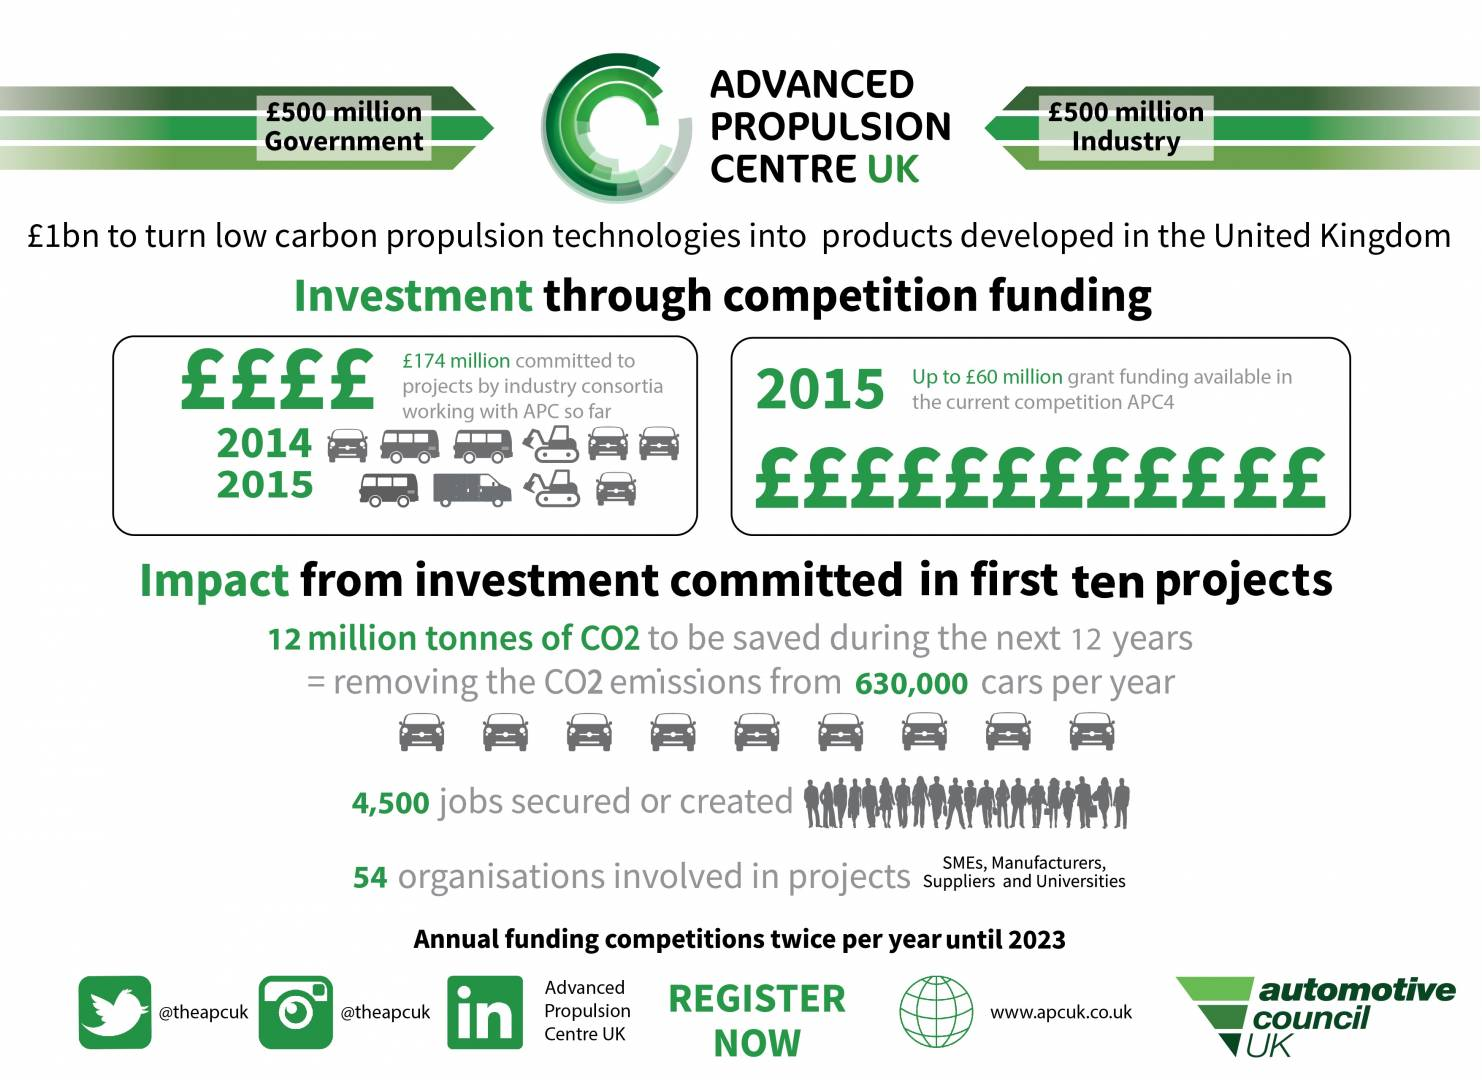 Infographic - impact of APC investments committed so far.